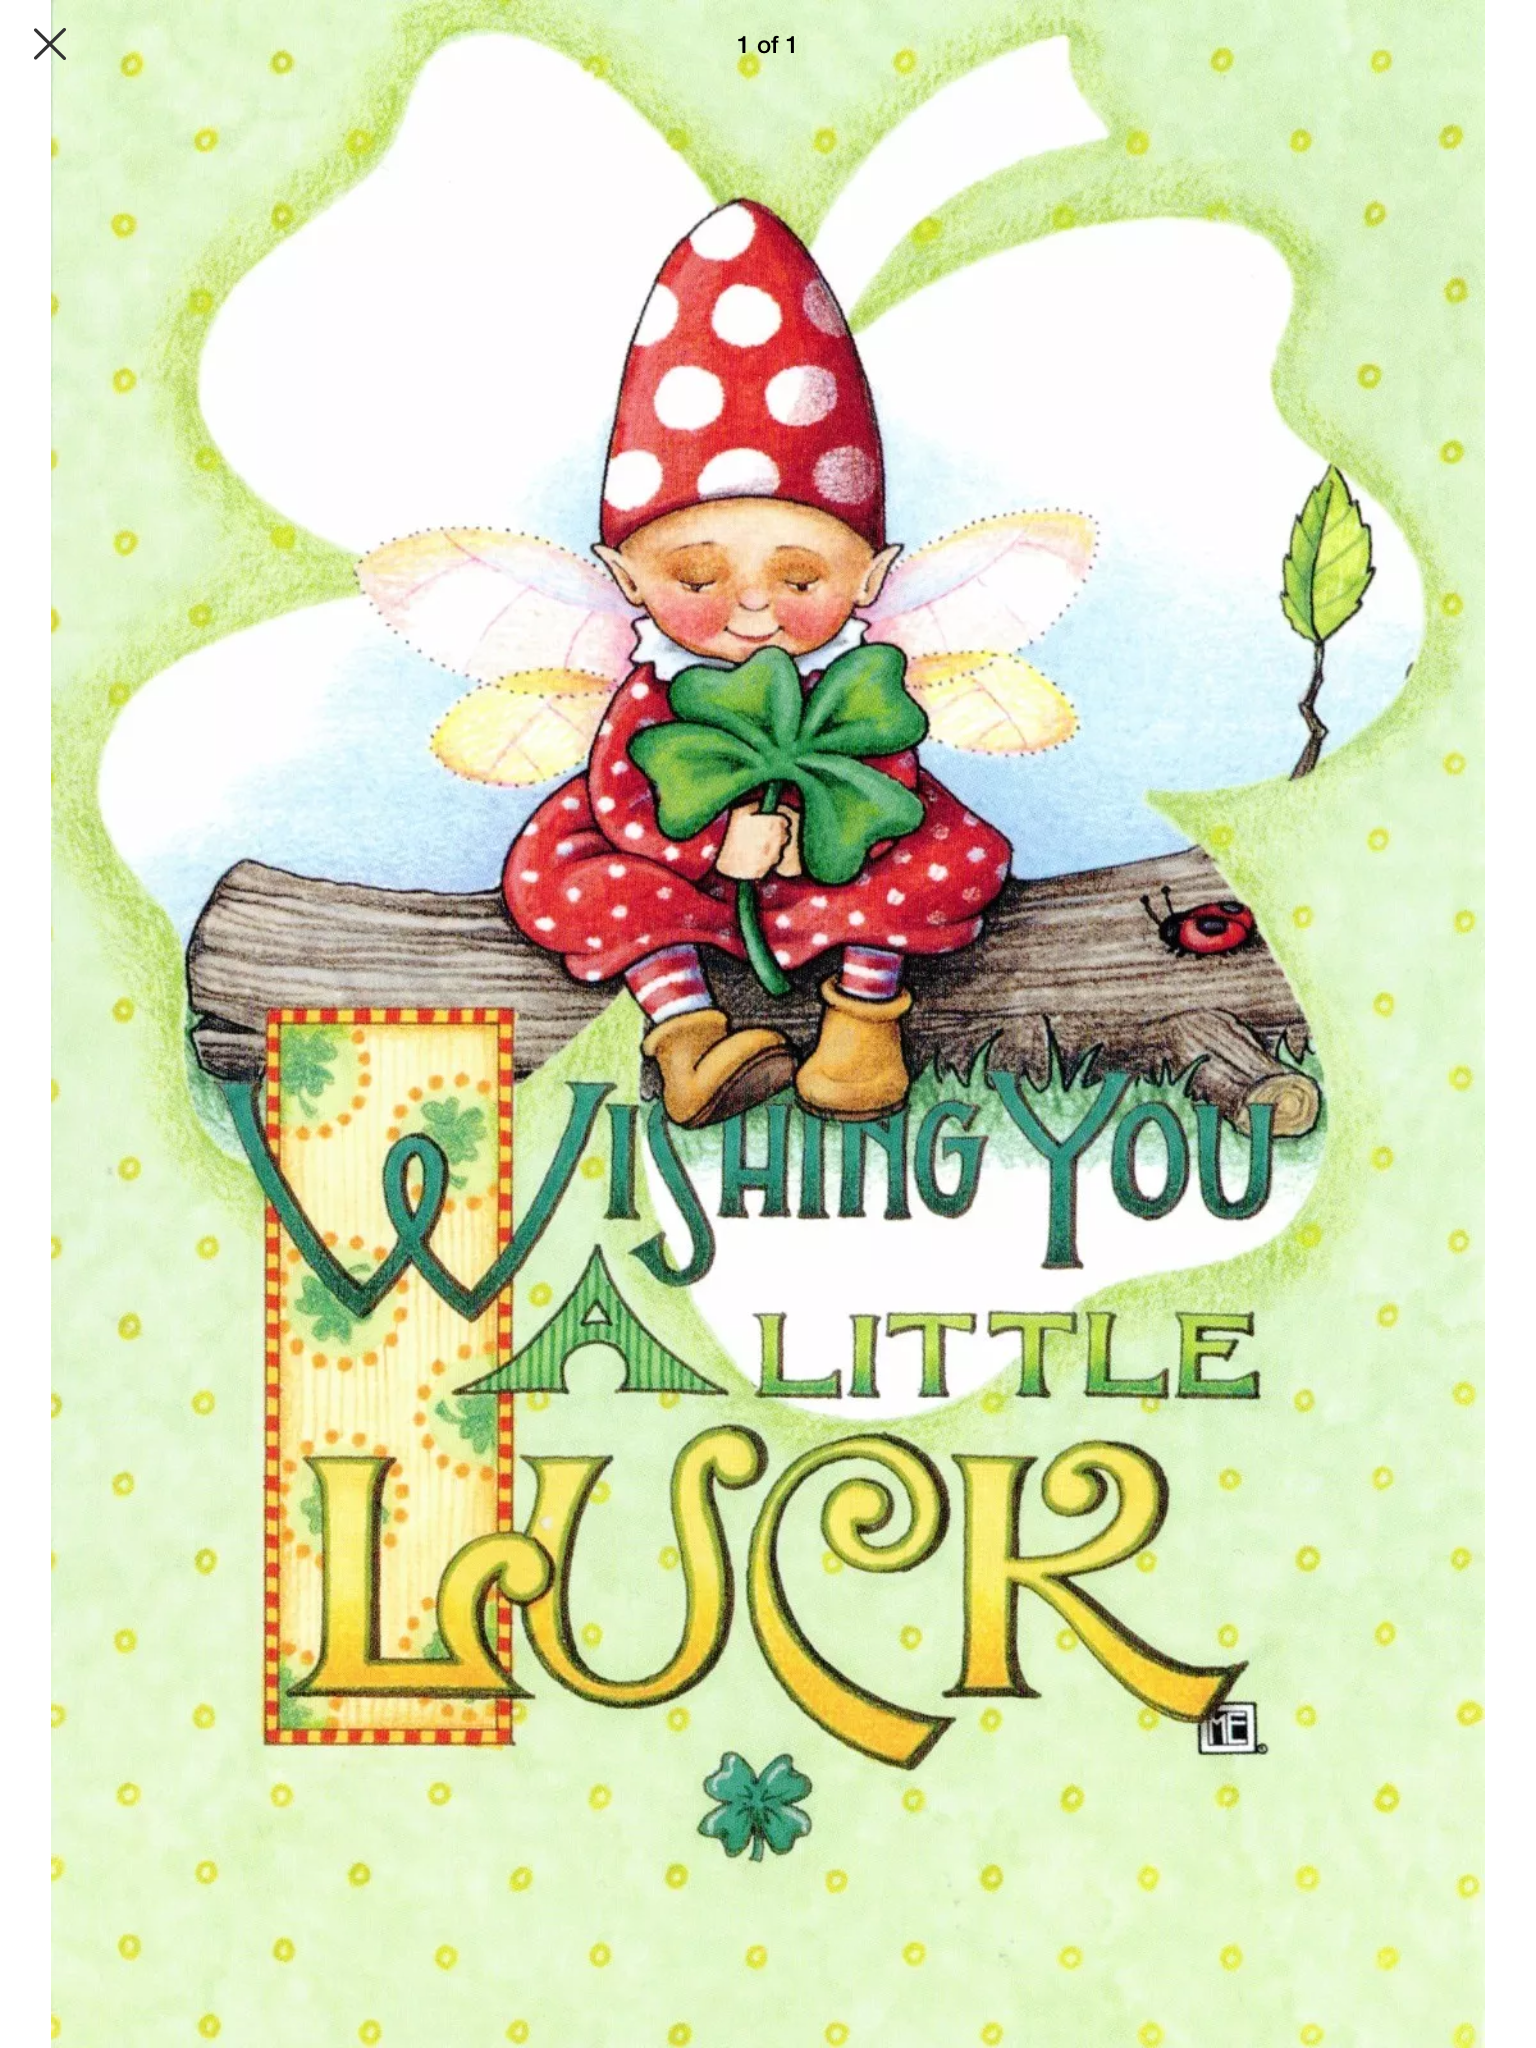 Pin By Maryanne Hodges On St Patricks Day Pinterest Mary